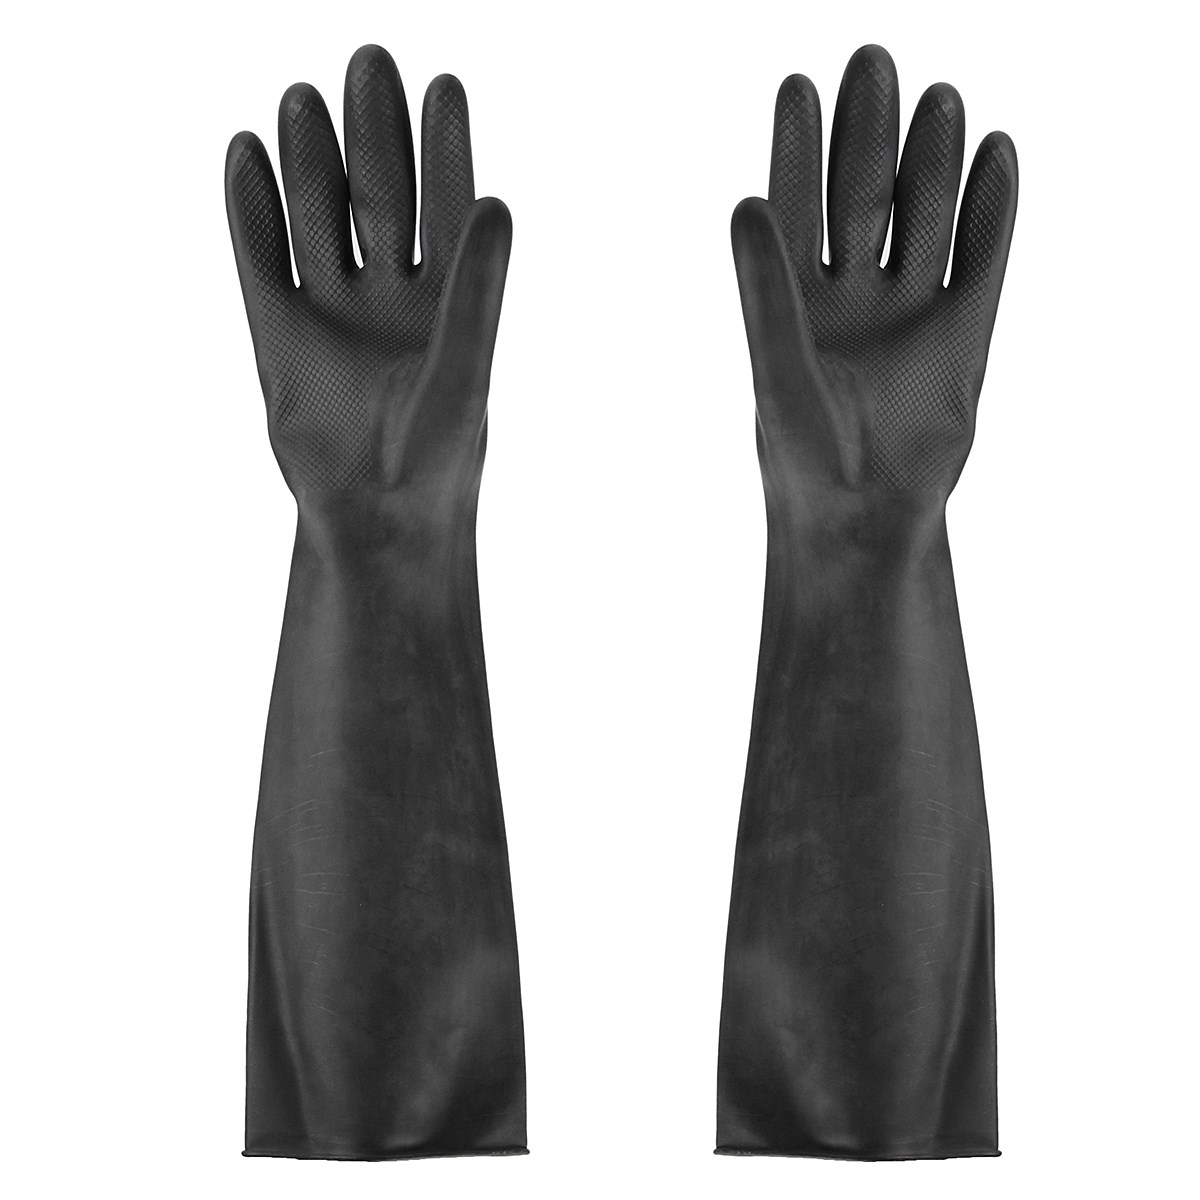 NEW Elbow-Long Industry Anti Acid Alkali Chemical Resistant Rubber Work Gloves Safety Glove insulated gloves electric gloves 5kv anti live live work high pressure live work labor protection protective rubber gloves